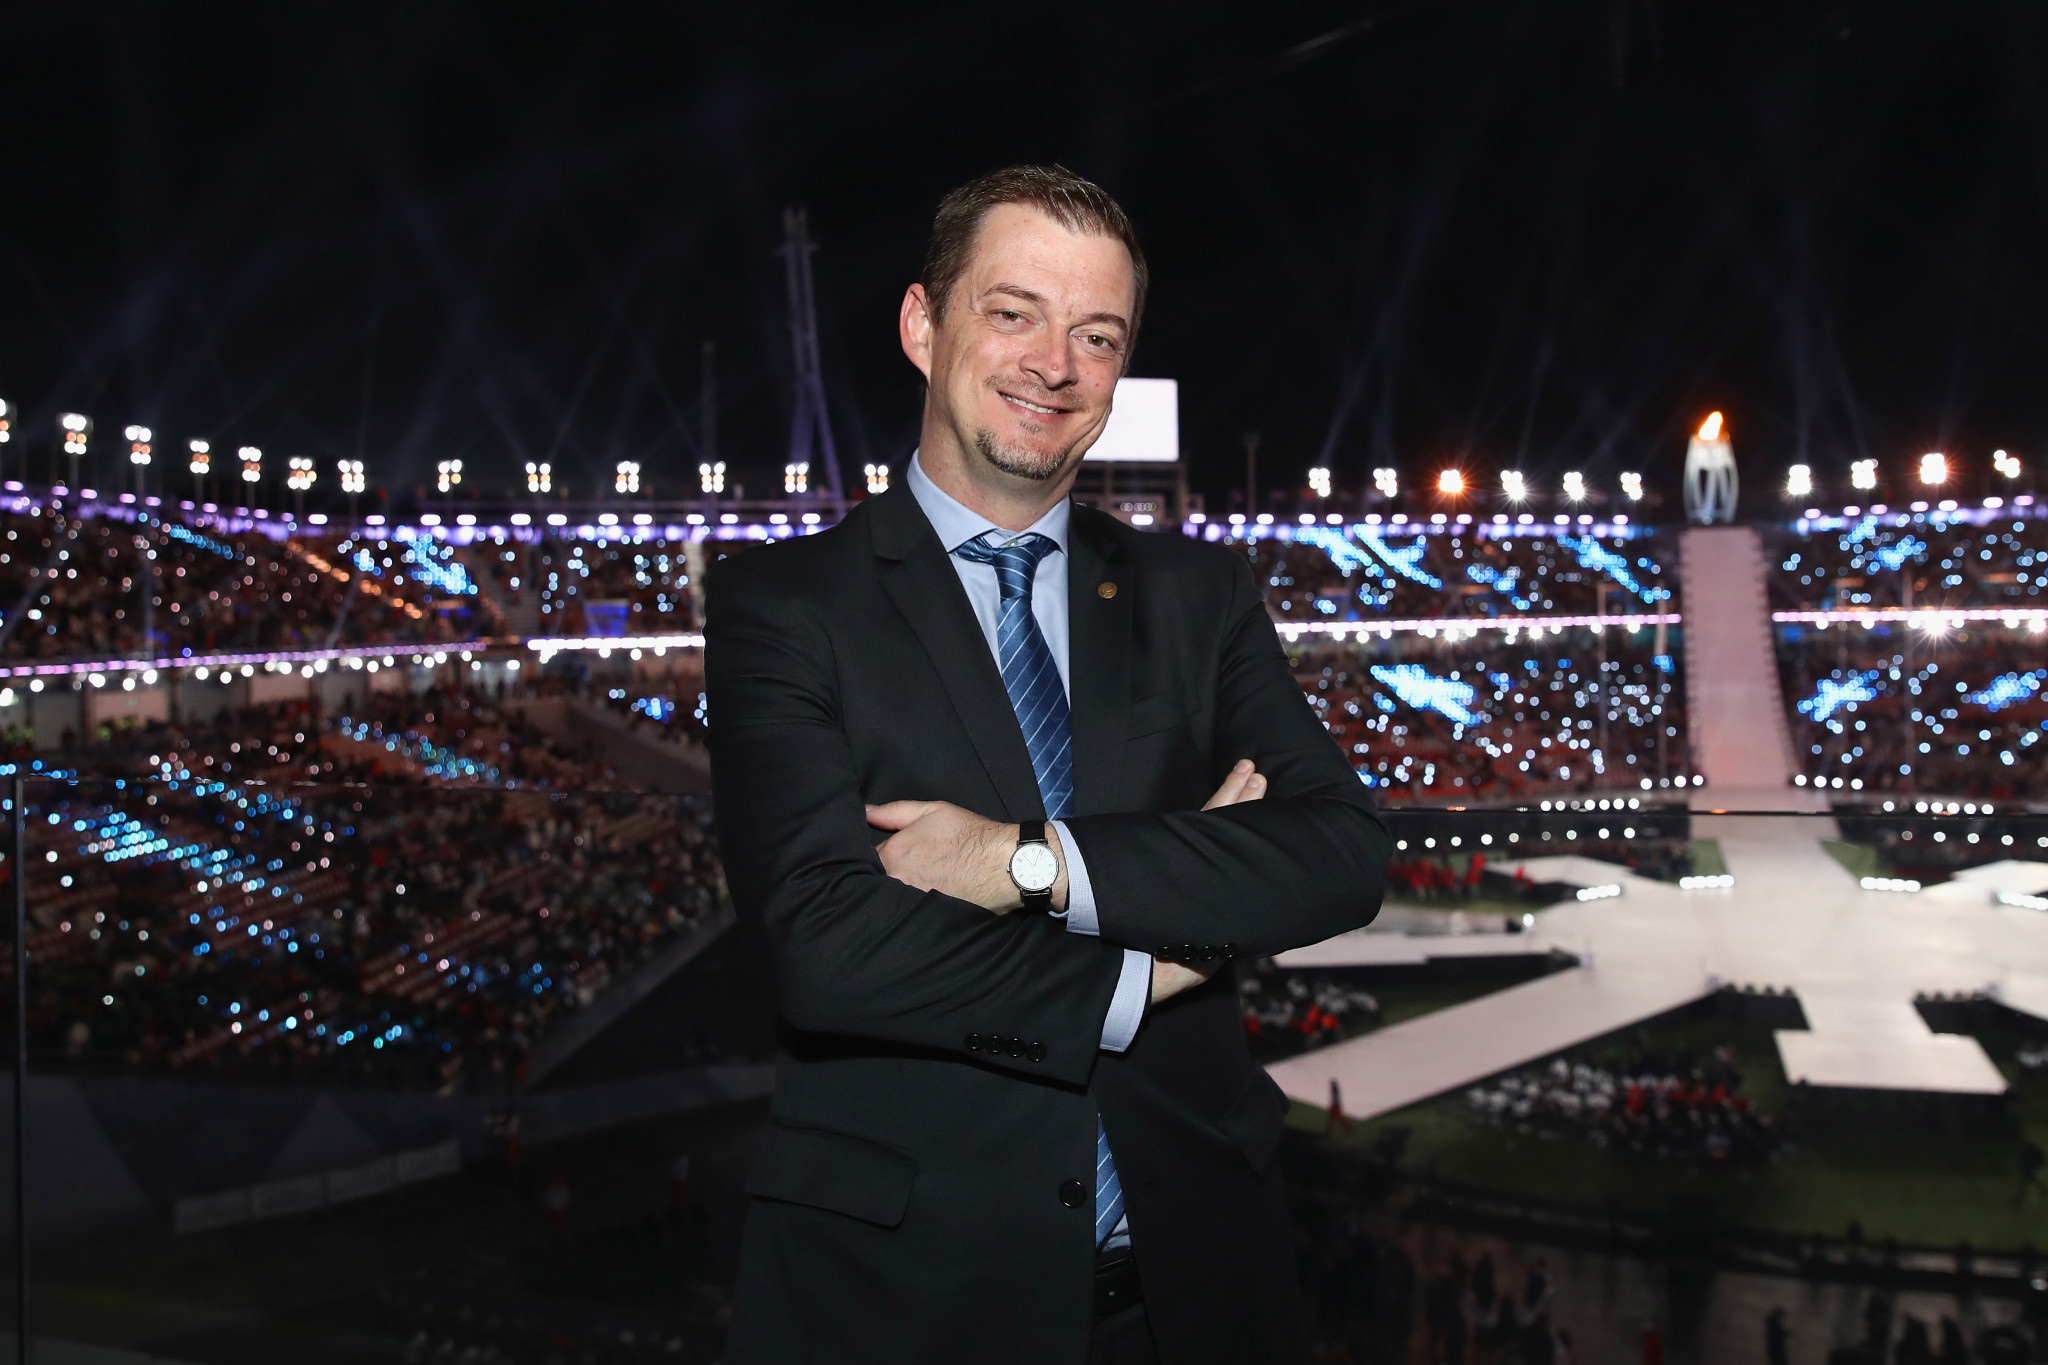 IPC President expecting first Paralympic Games sell-out at Tokyo 2020